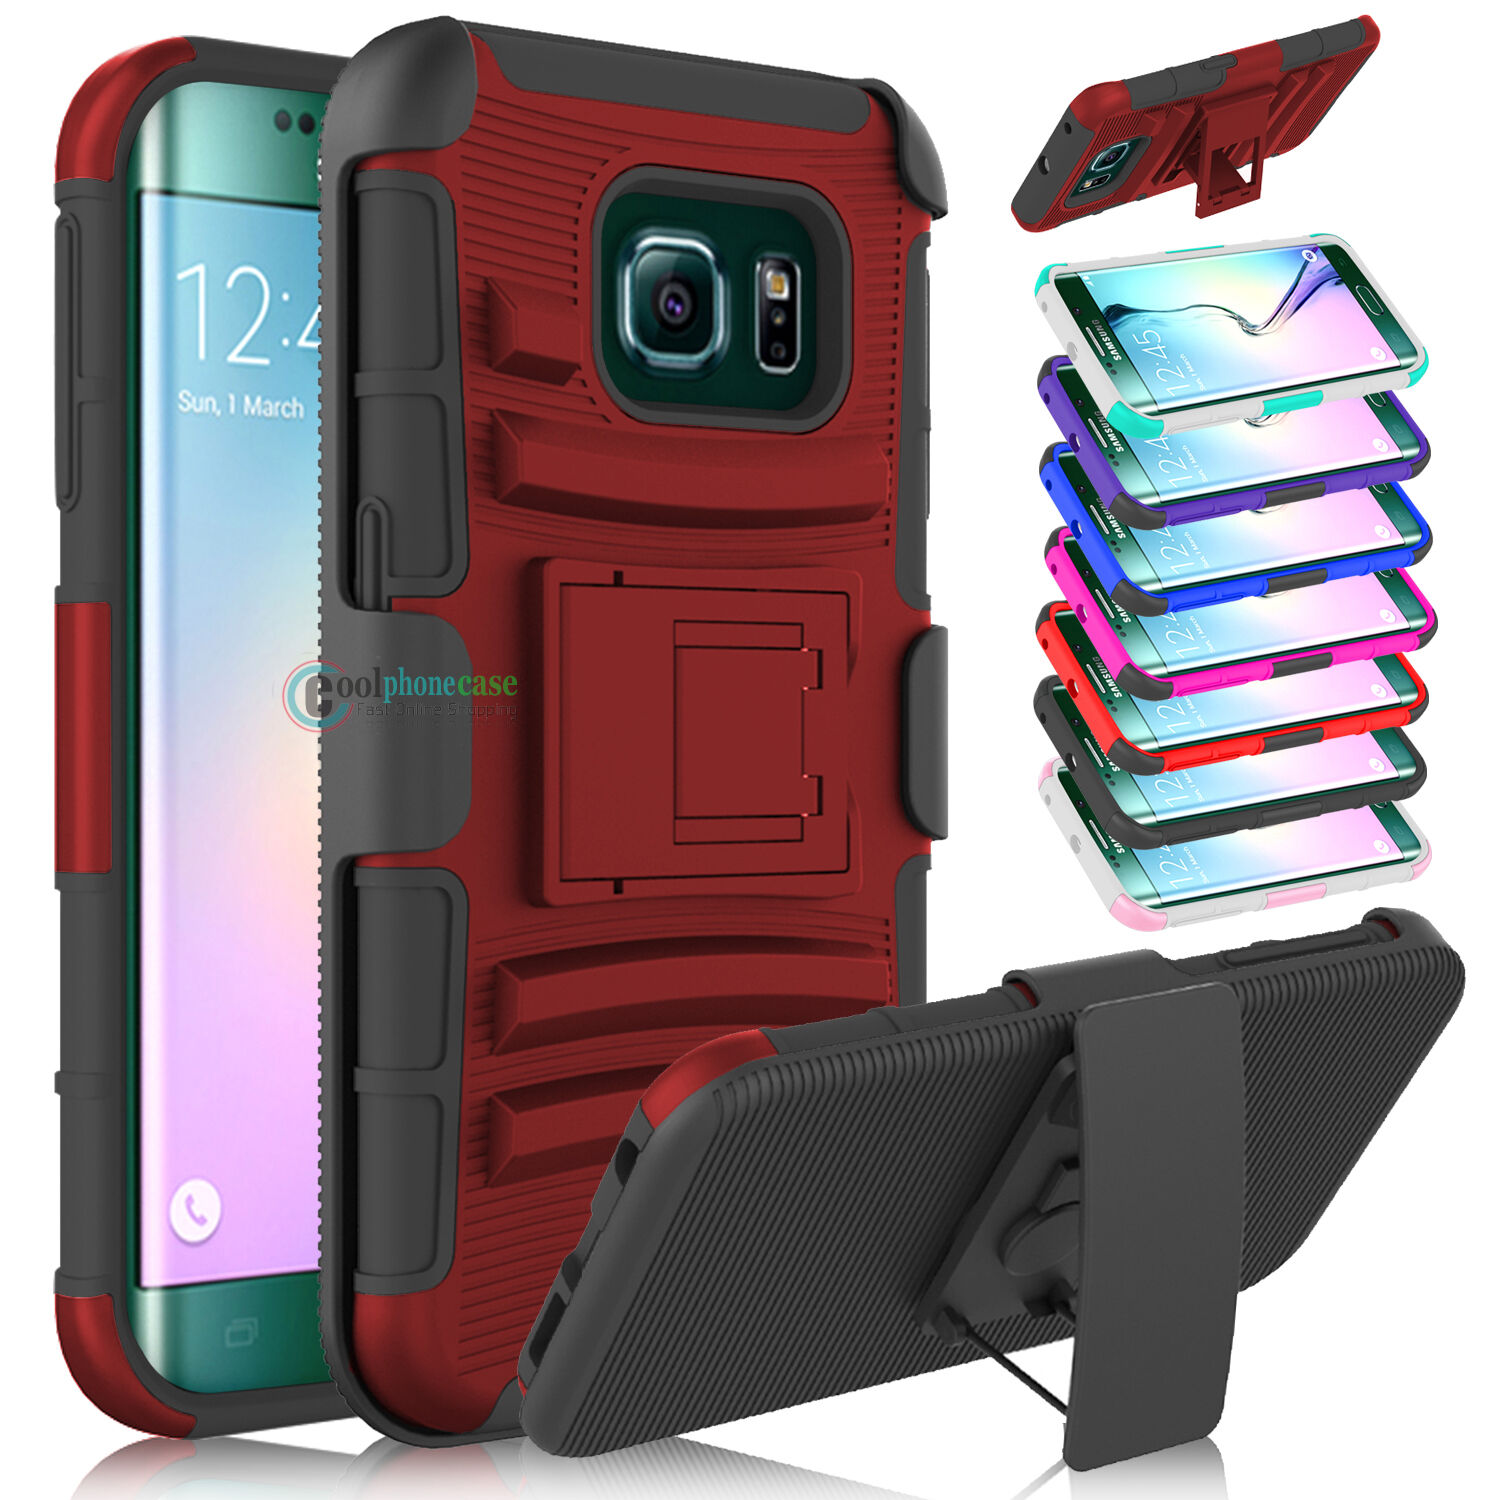 Hybrid Belt Clip Holster Kickstand Case Cover For Samsung Galaxy S6/Active/Edge+